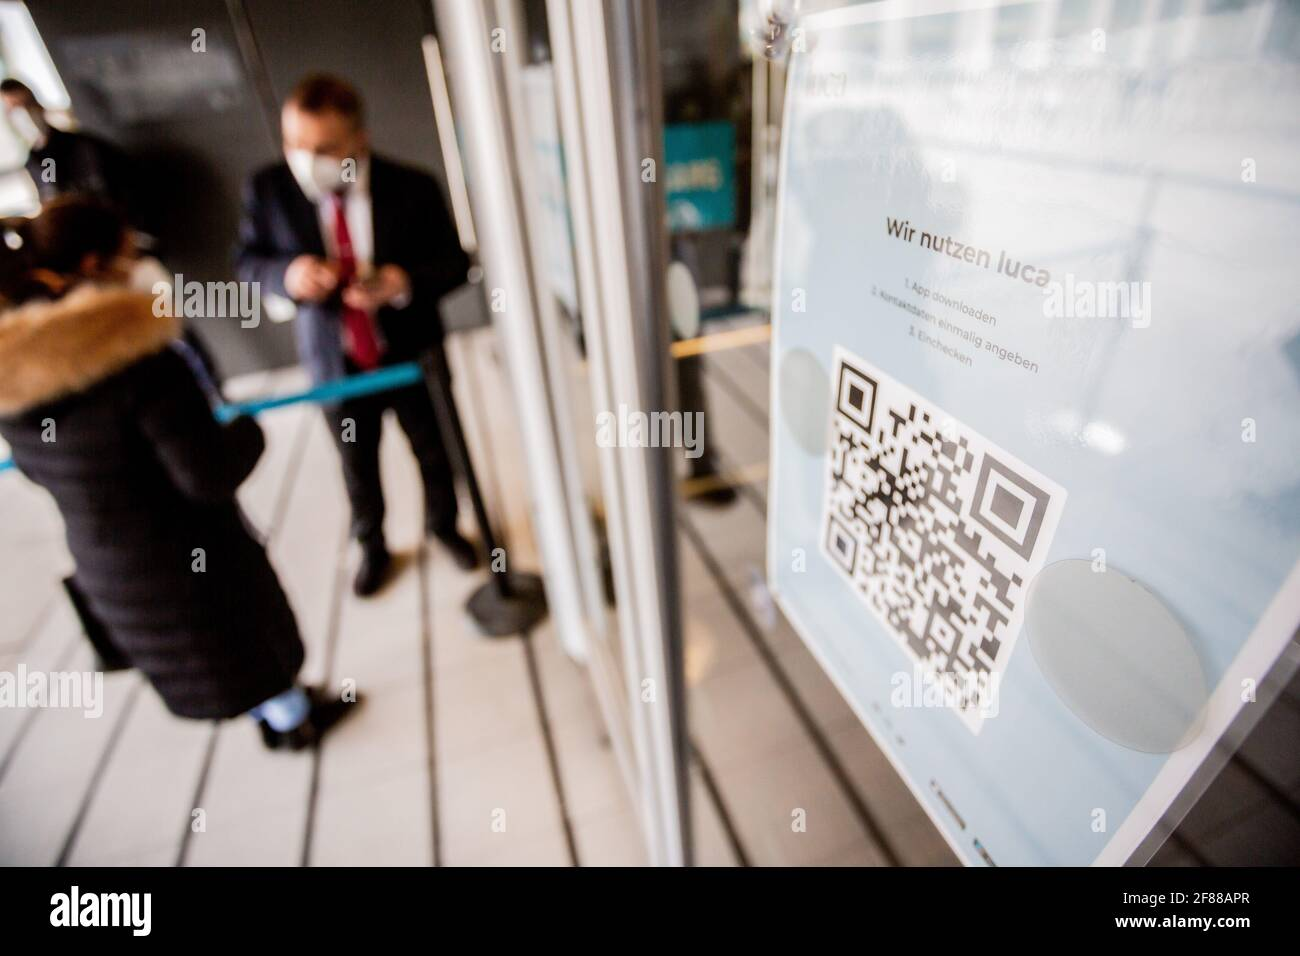 Berlin, Germany. 12th Apr, 2021. A QR code for downloading the Luca app hangs at the entrance of a clothing store at Alexanderplatz. The app is used to provide data for possible contact tracing. Credit: Christoph Soeder/dpa/Alamy Live News Stock Photo